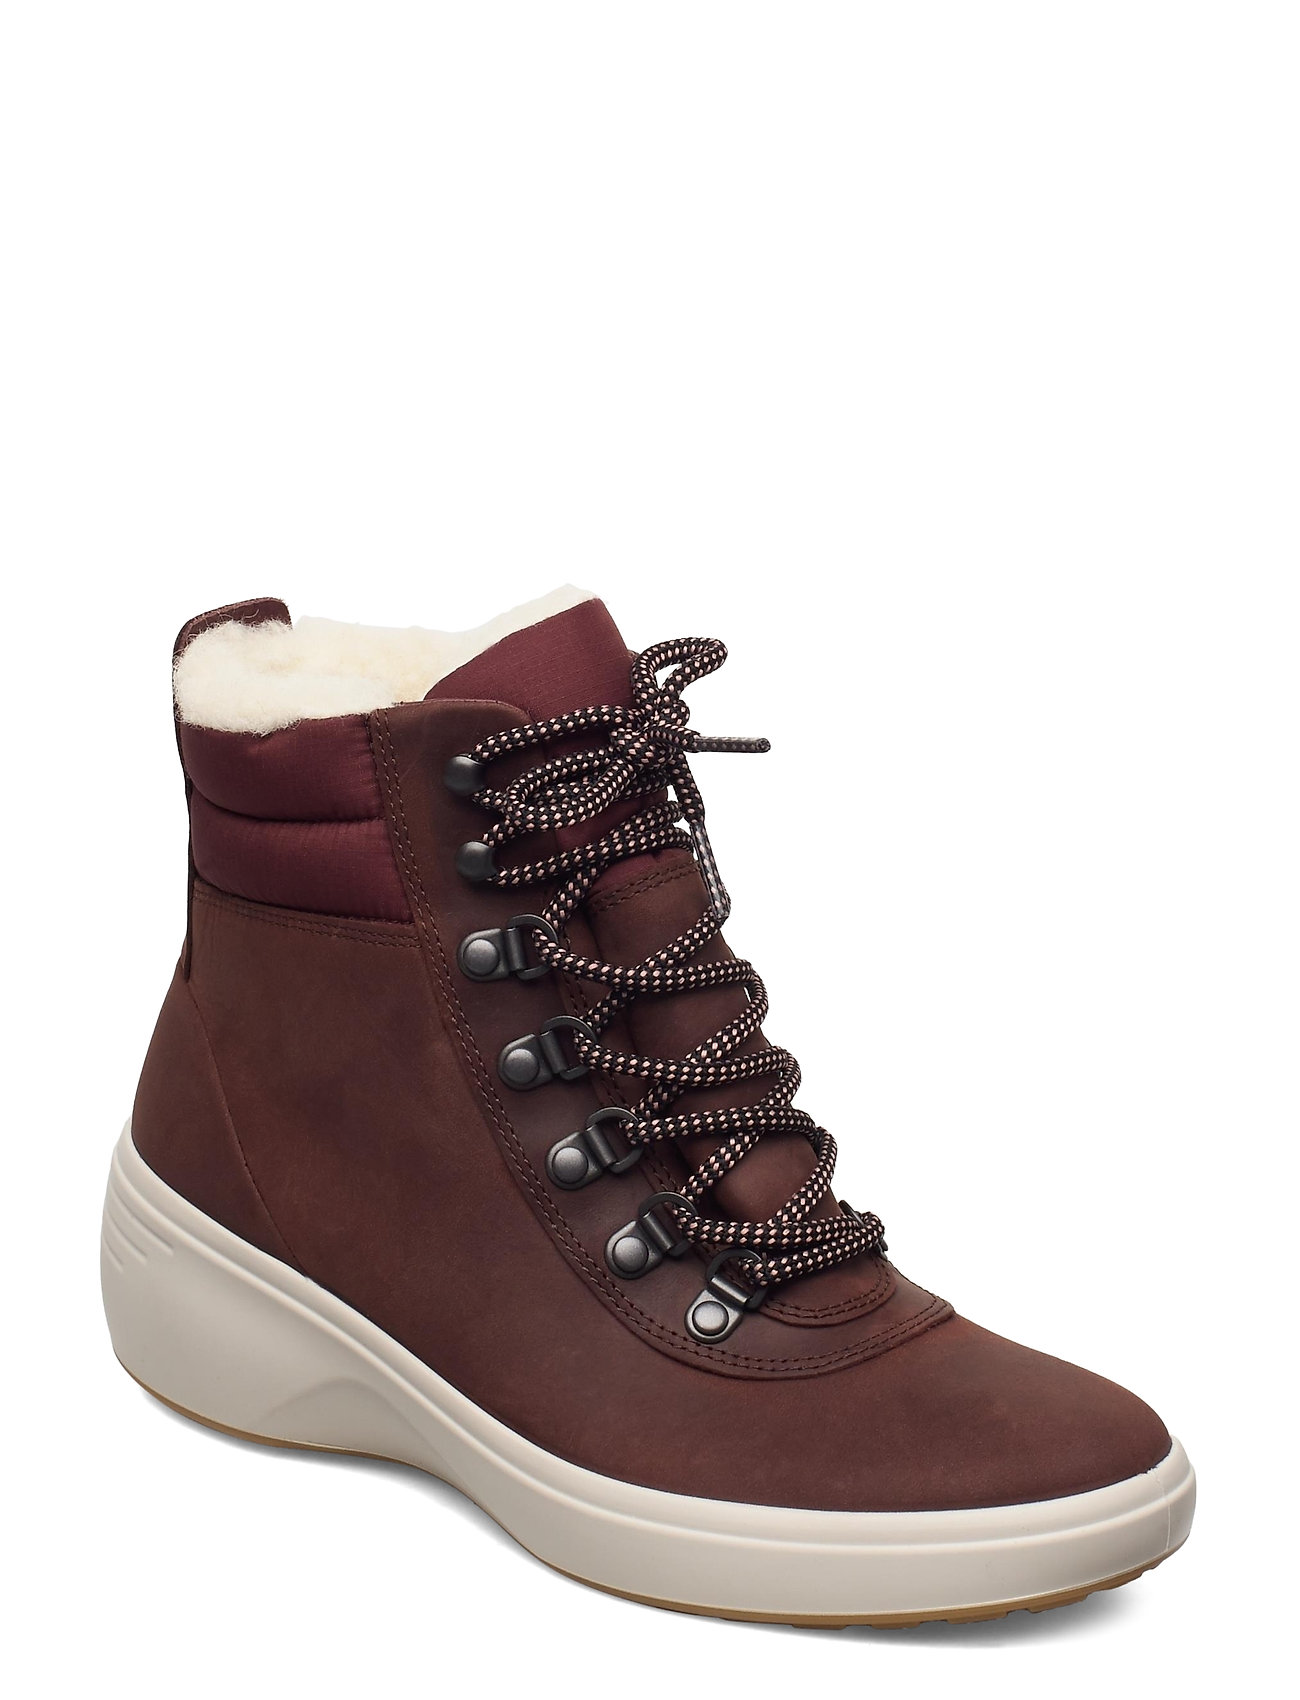 Image of Soft 7 Wedge Tred Shoes Boots Ankle Boots Ankle Boot - Flat Brun ECCO (3446803469)